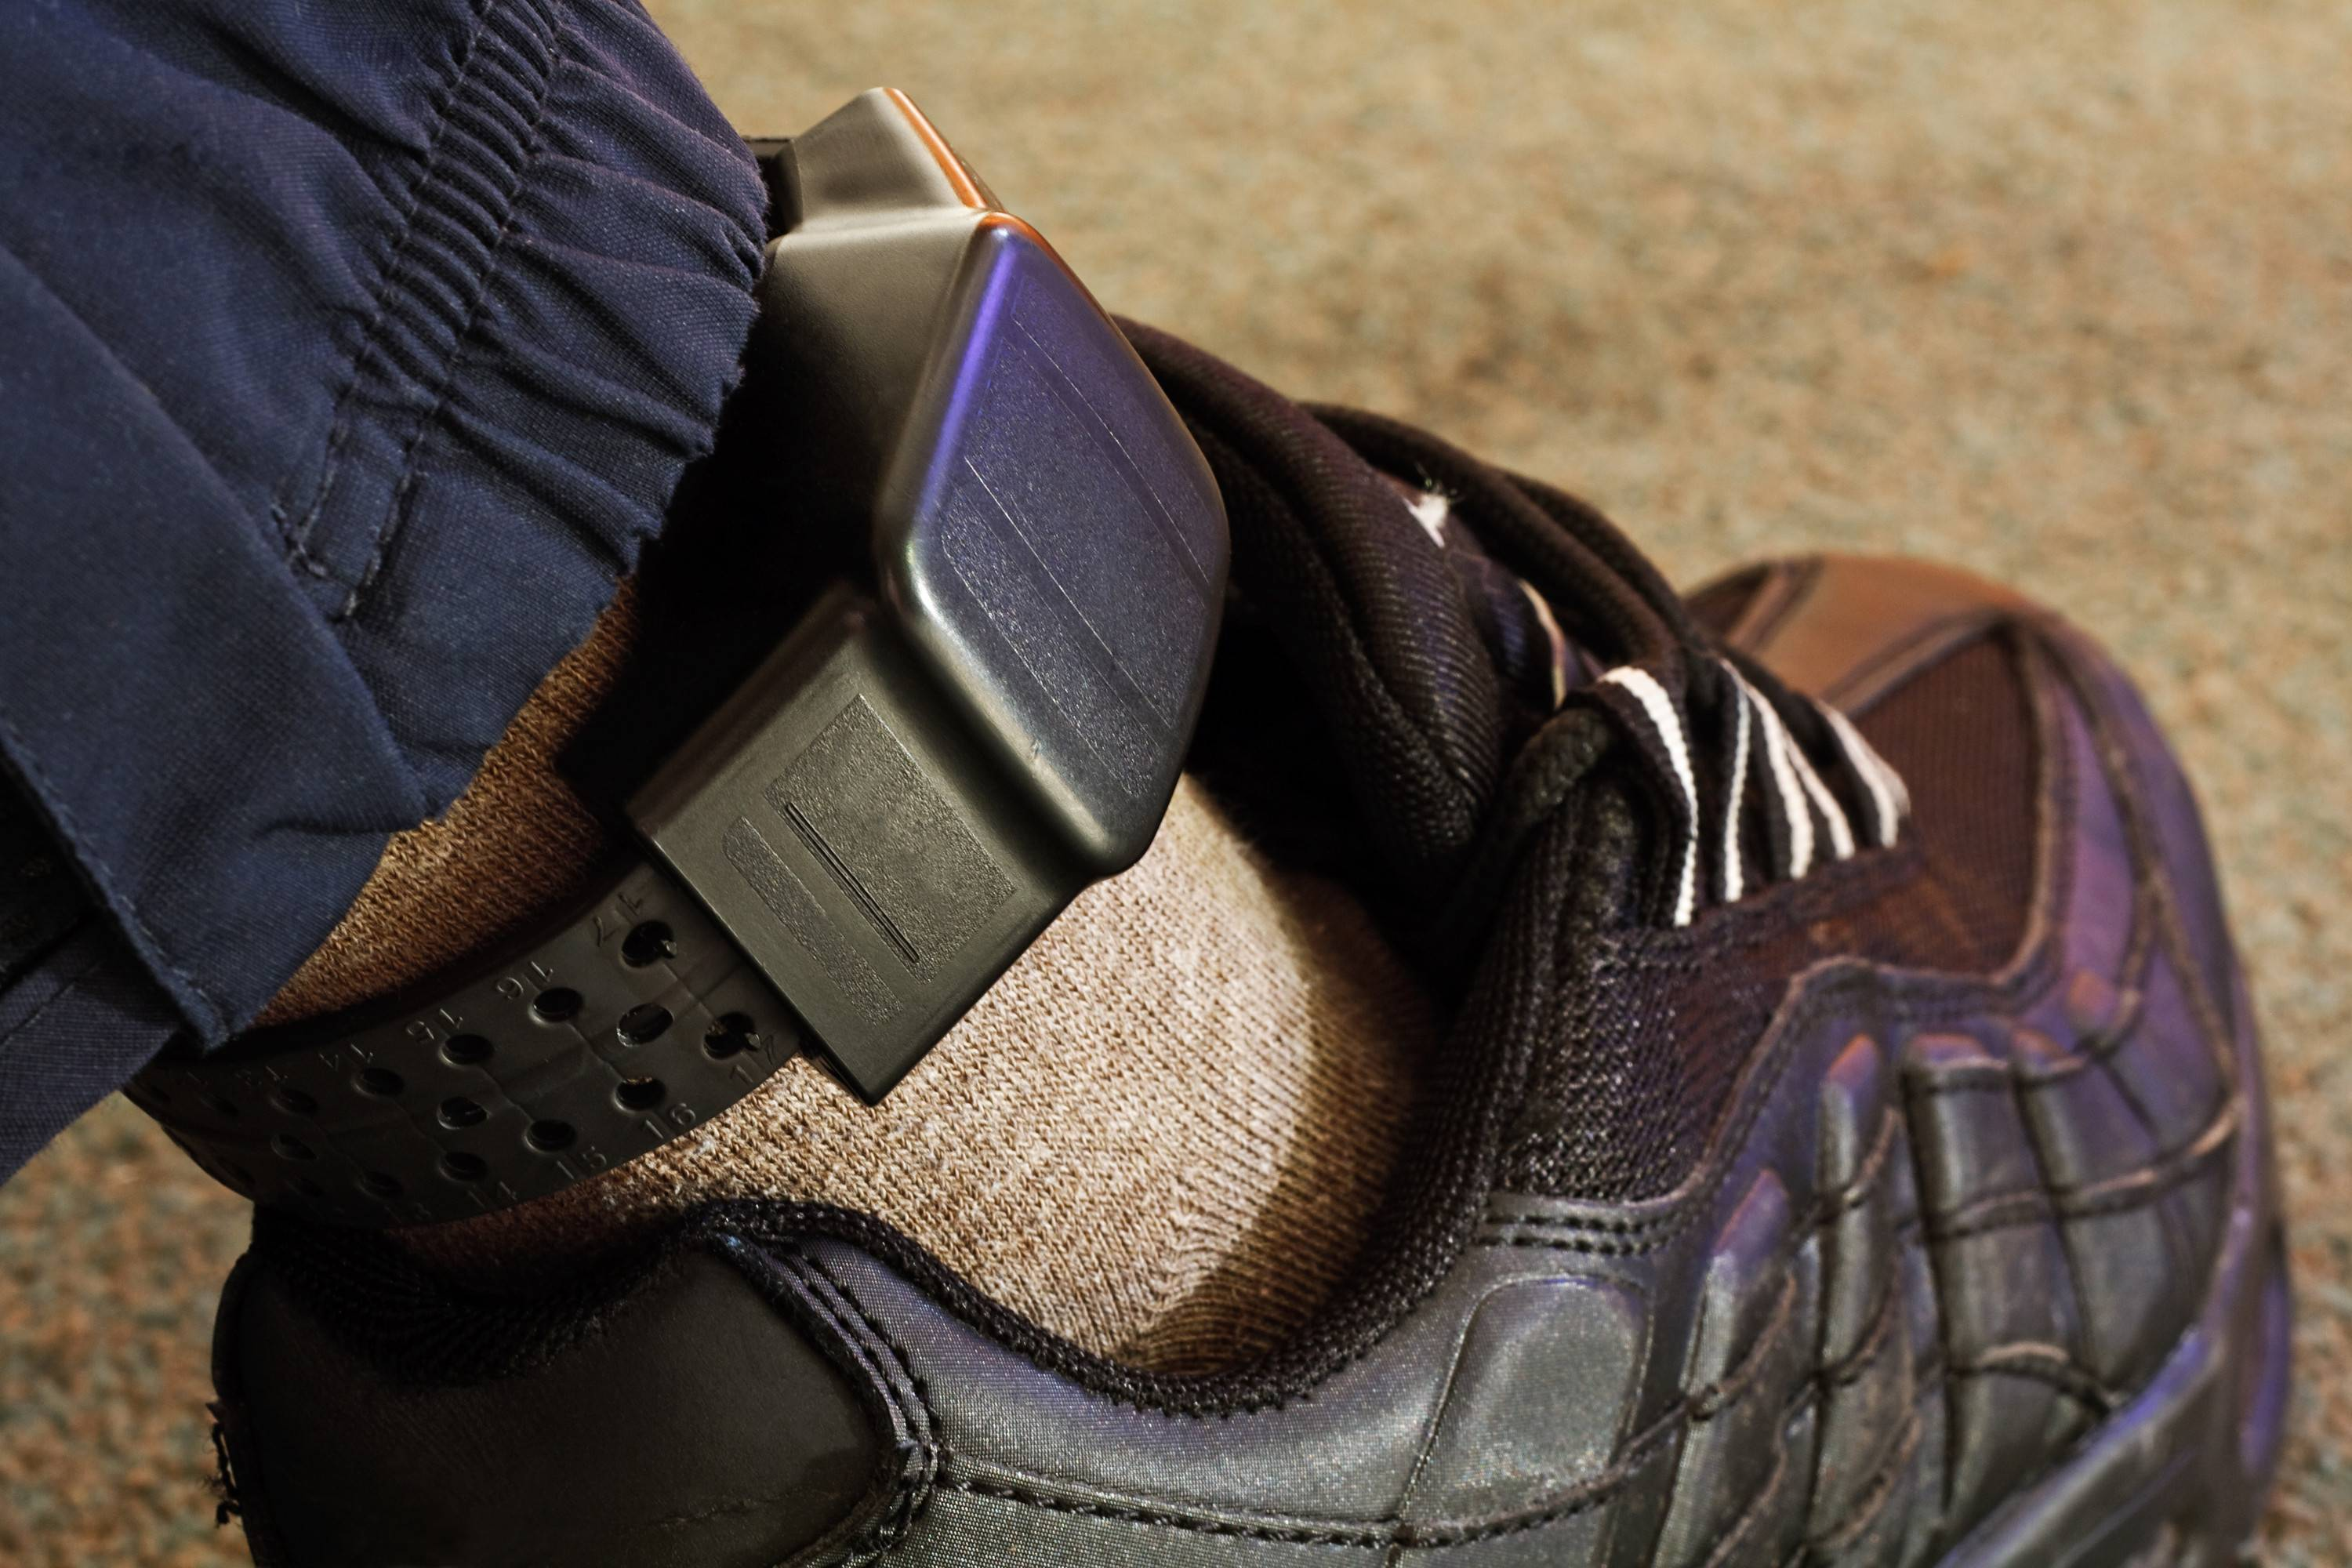 Electronic Monitoring Home Confinement Qualifications on family gps tracking devices